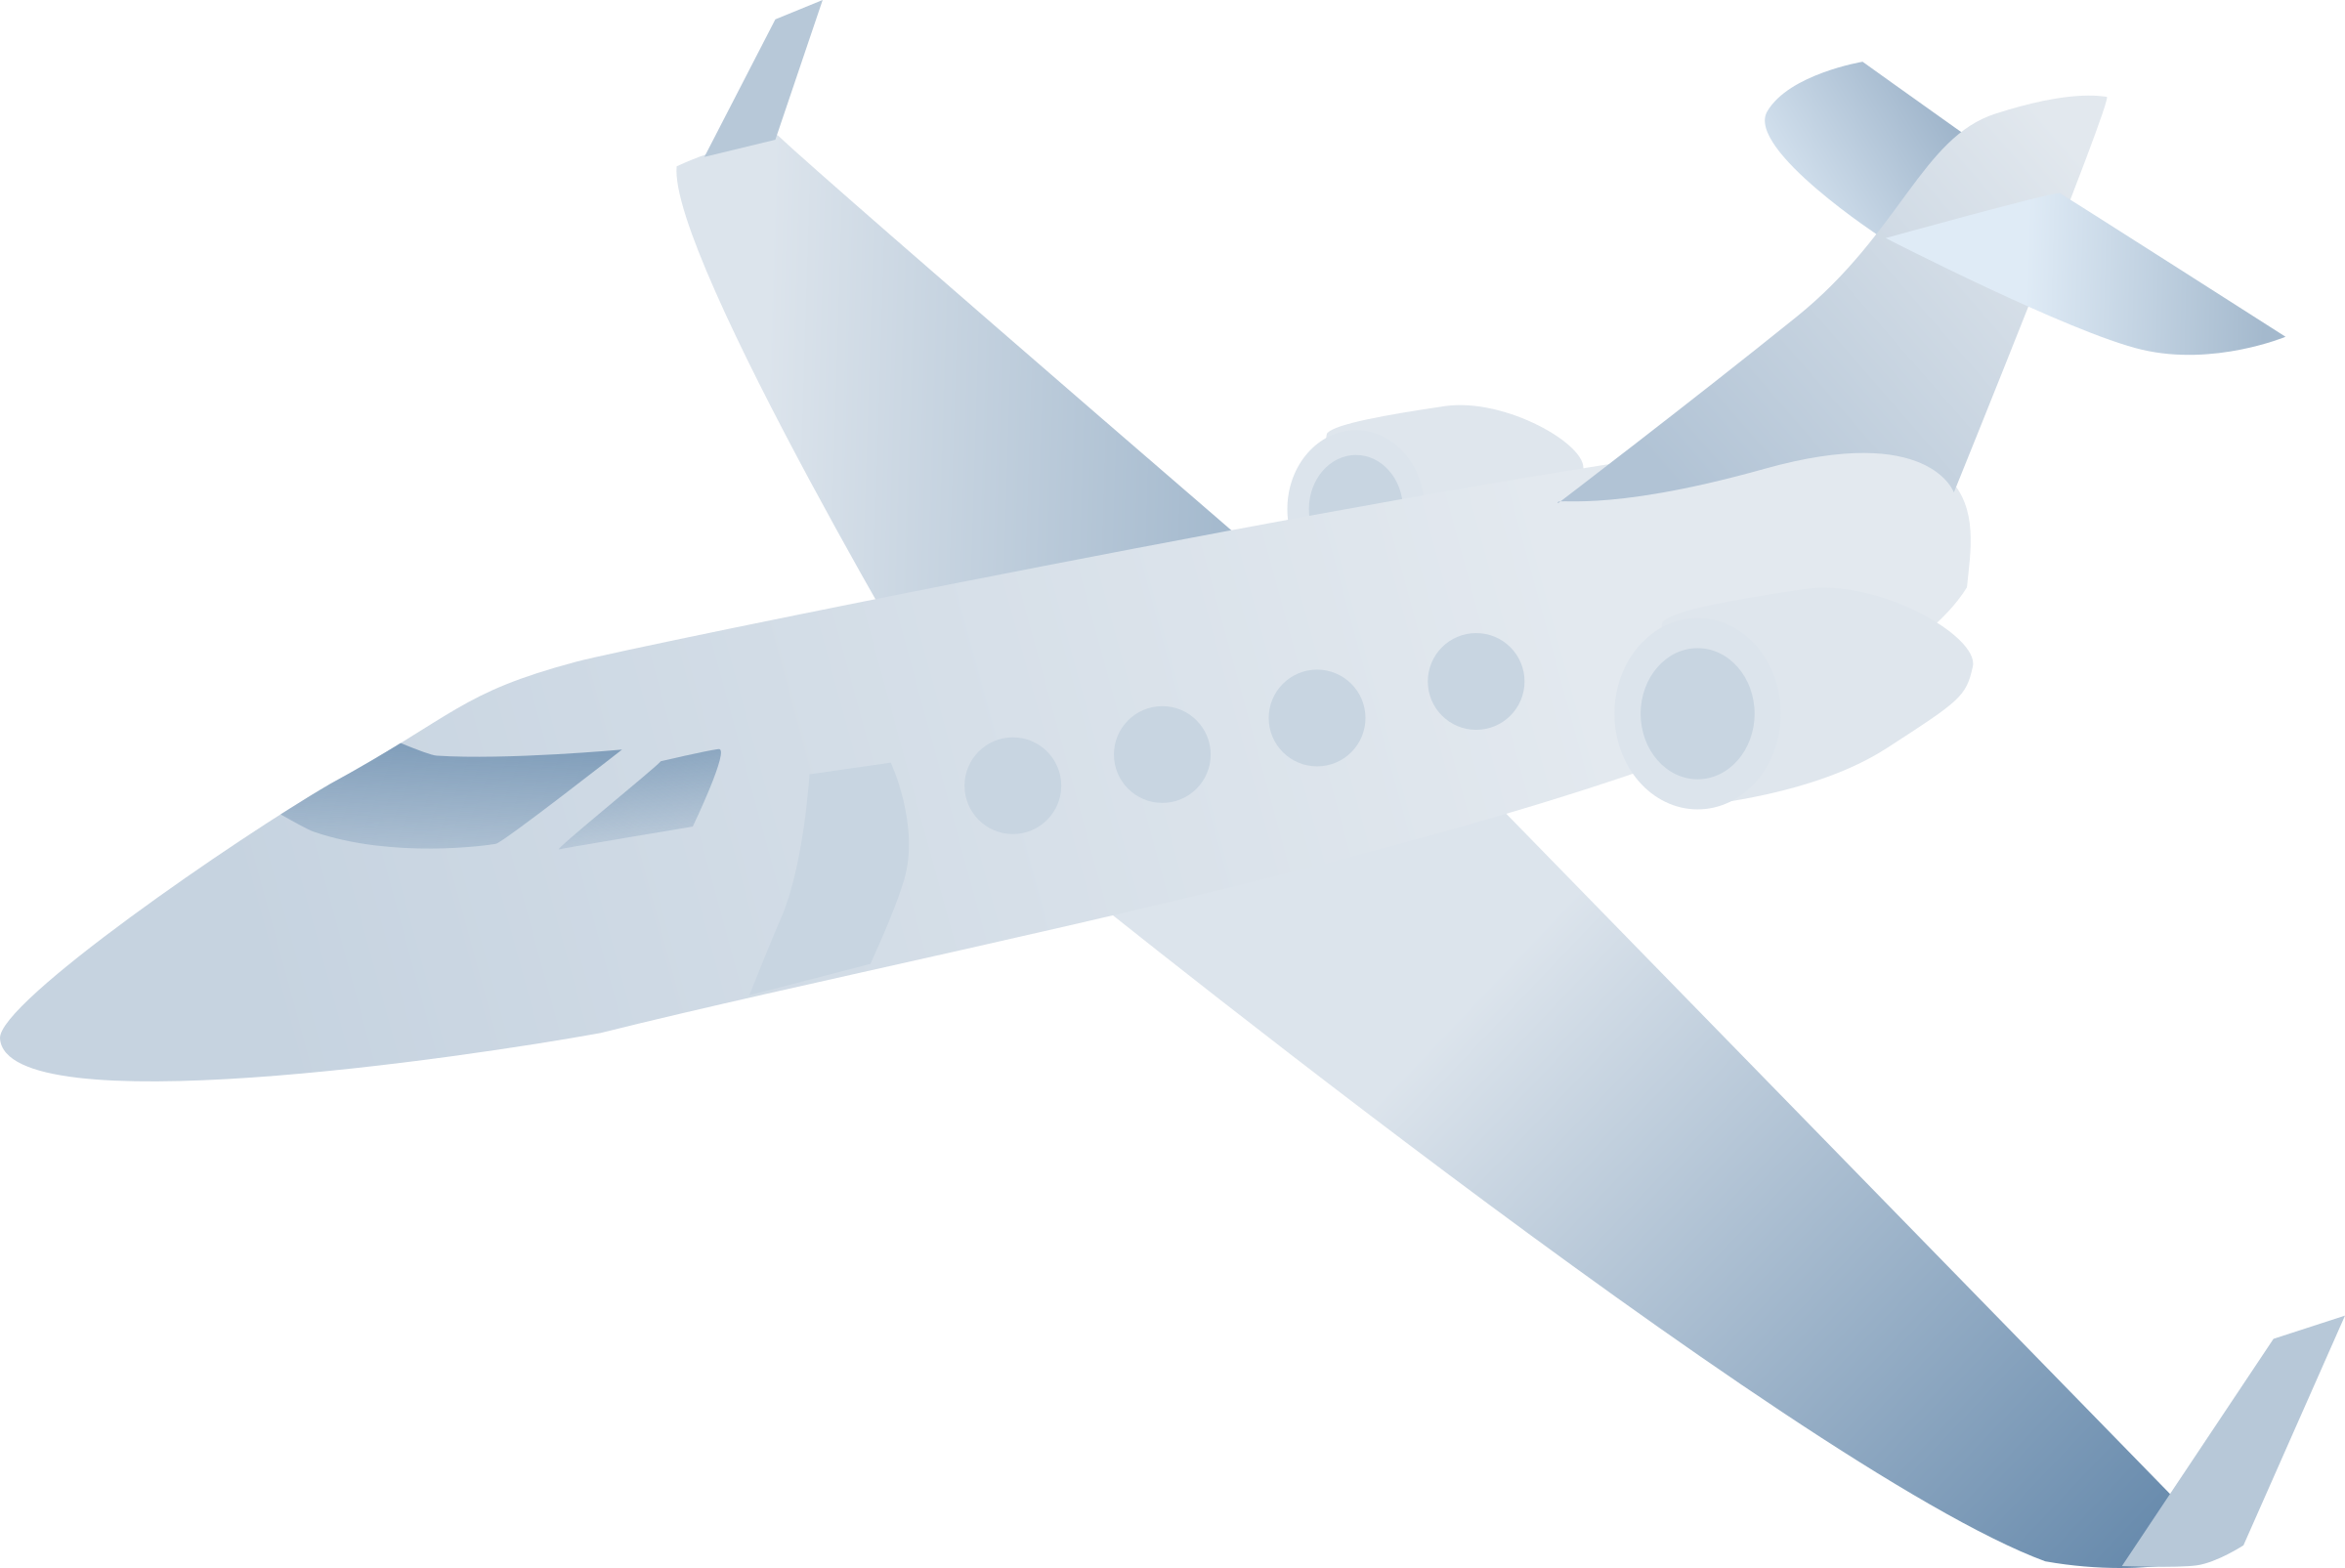 Airplane big image png. Jet clipart small jet